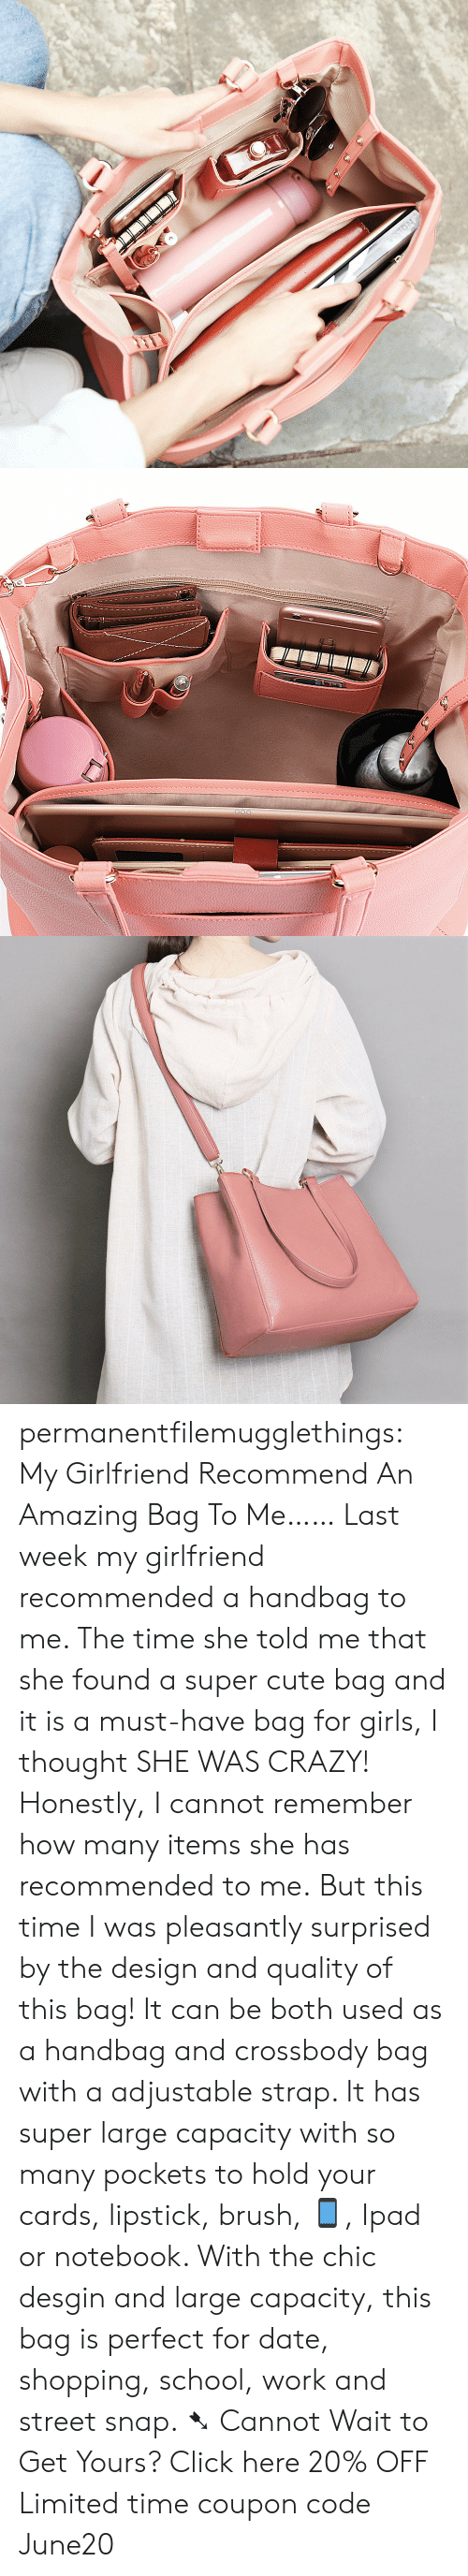 handbag: permanentfilemugglethings: My Girlfriend Recommend An Amazing Bag To Me…… Last week my girlfriend recommended a handbag to me. The time she told me that she found a super cute bag and it is a must-have bag for girls, I thought SHE WAS CRAZY! Honestly, I cannot remember how many items she has recommended to me. But this time I was pleasantly surprised by the design and quality of this bag! It can be both used as a handbag and crossbody bag with a adjustable strap. It has super large capacity with so many pockets to hold your cards, lipstick, brush, 📱, Ipad or notebook. With the chic desgin and large capacity, this bag is perfect for date, shopping, school, work and street snap. ➷ Cannot Wait to Get Yours? Click here 20% OFF Limited time coupon code : June20